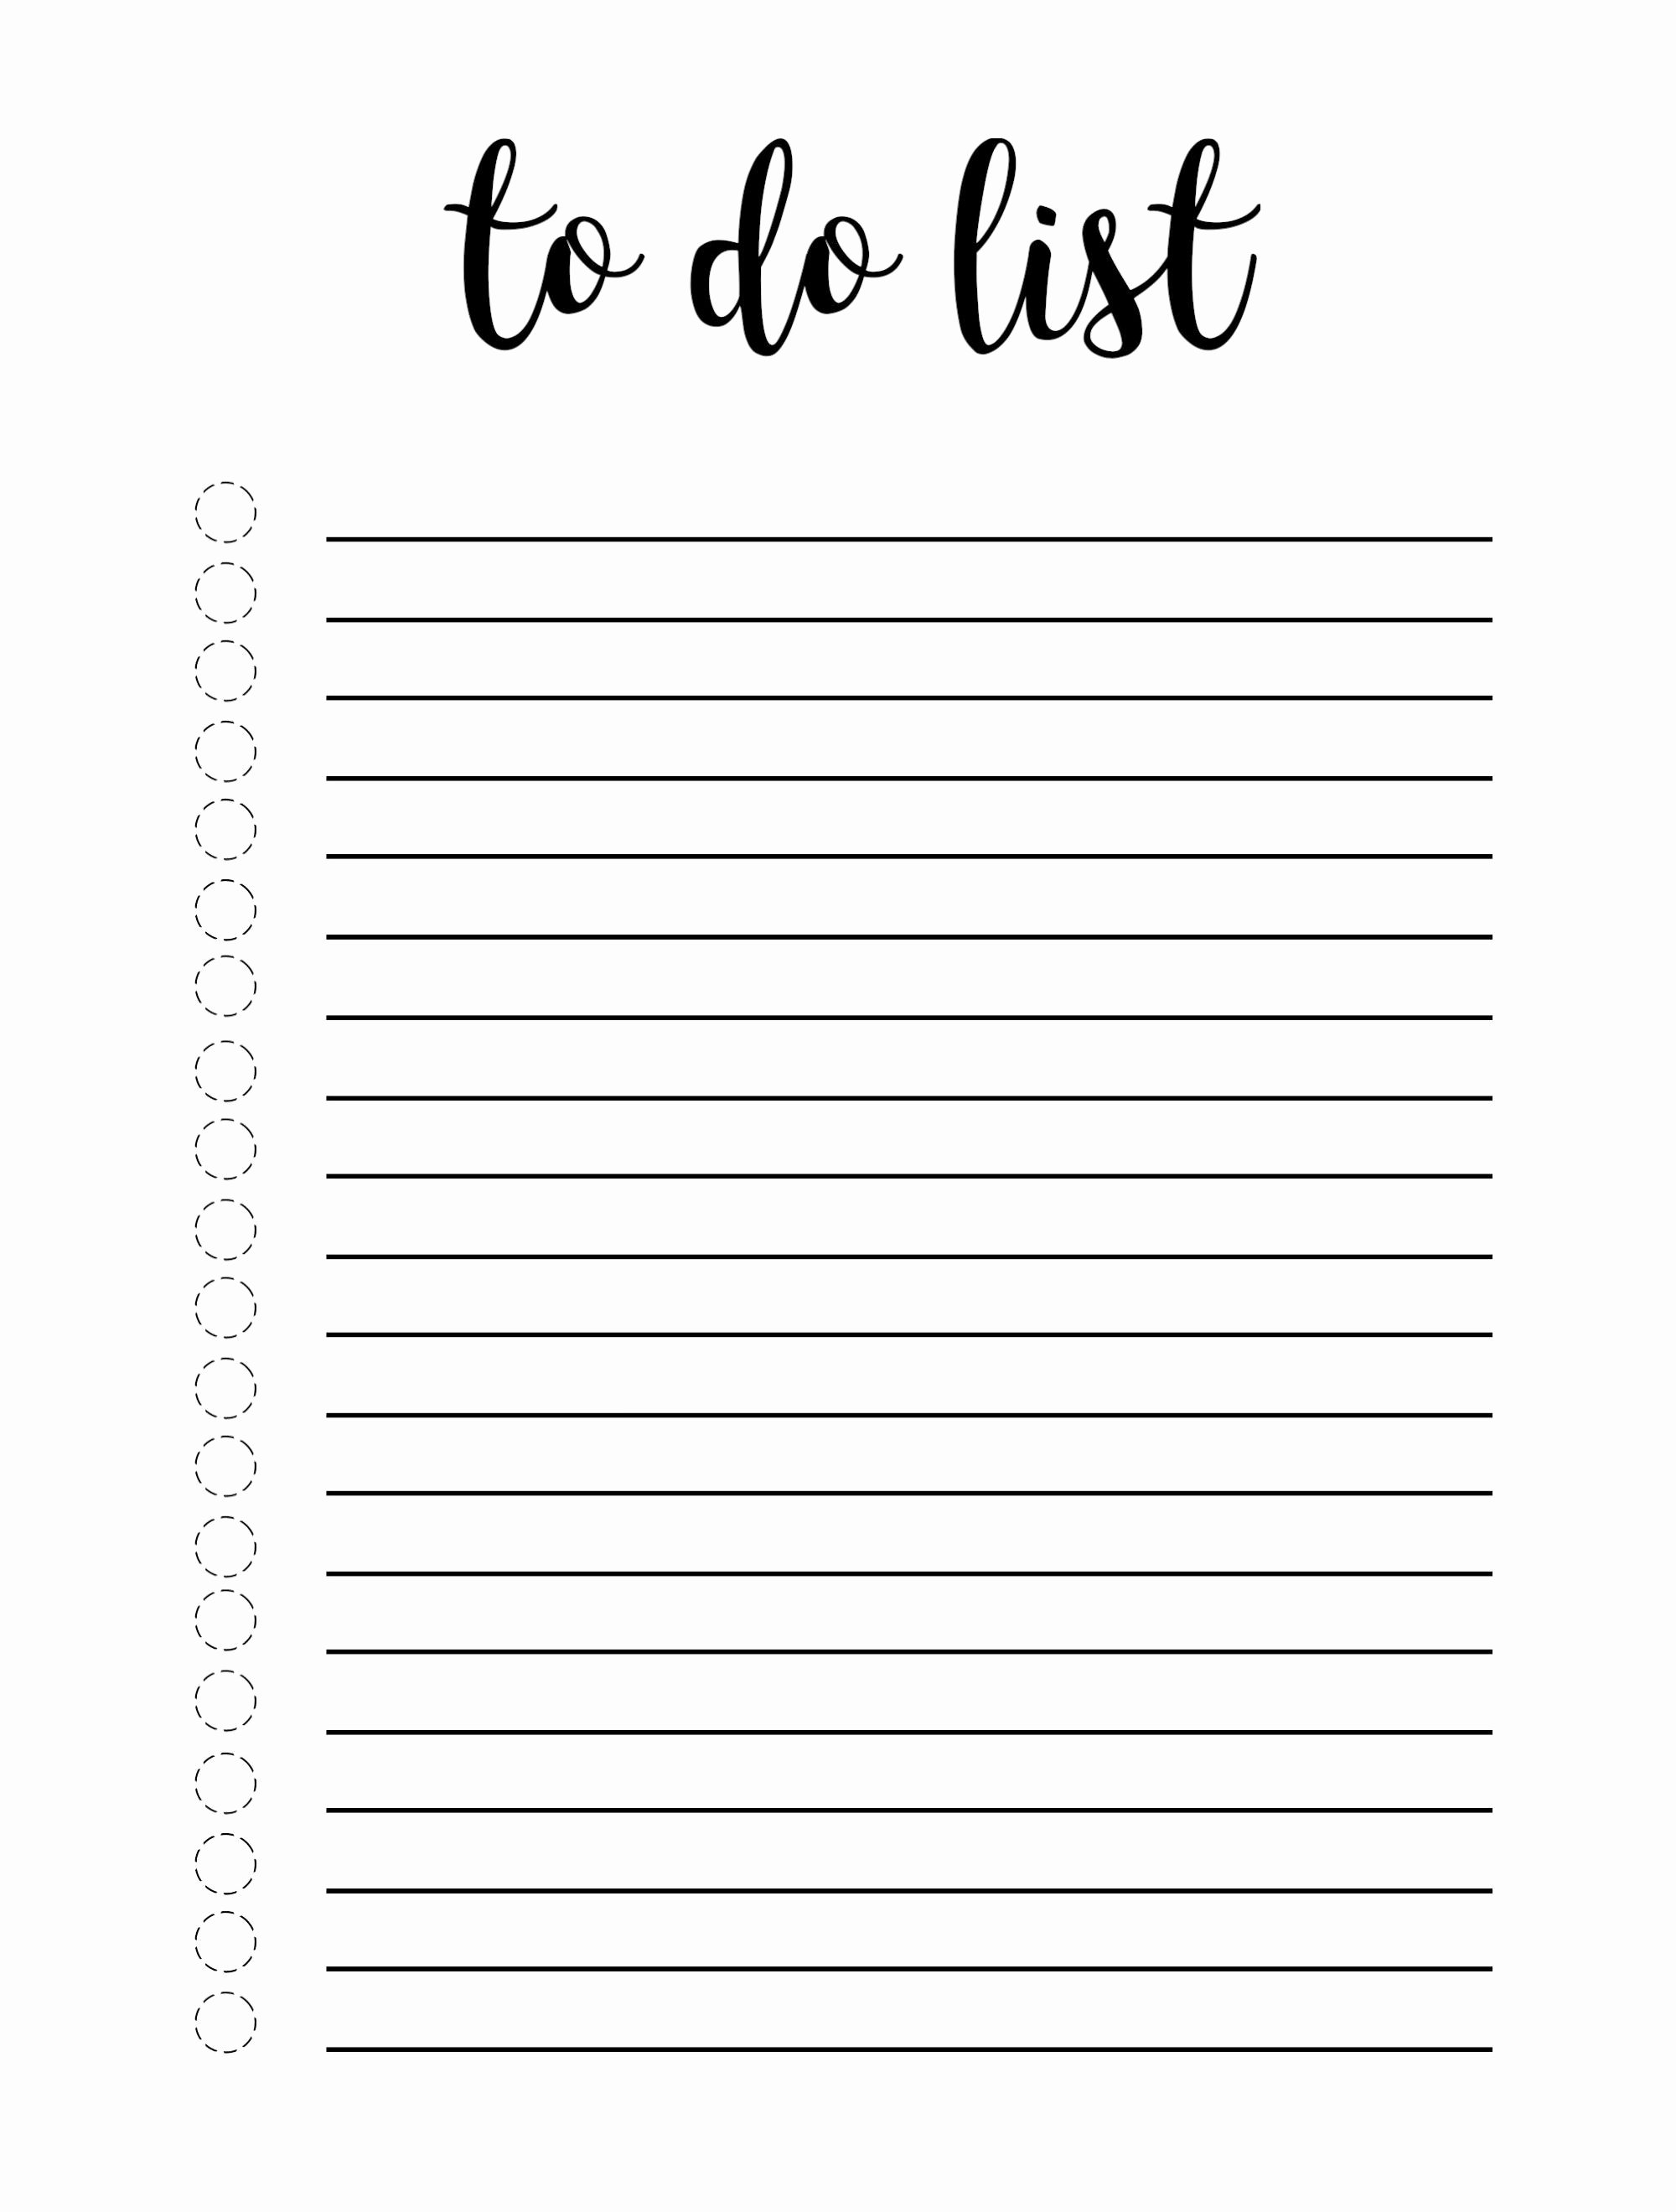 Cute to Do List Template Unique Cute to Do List Template Word Excel E Platform for